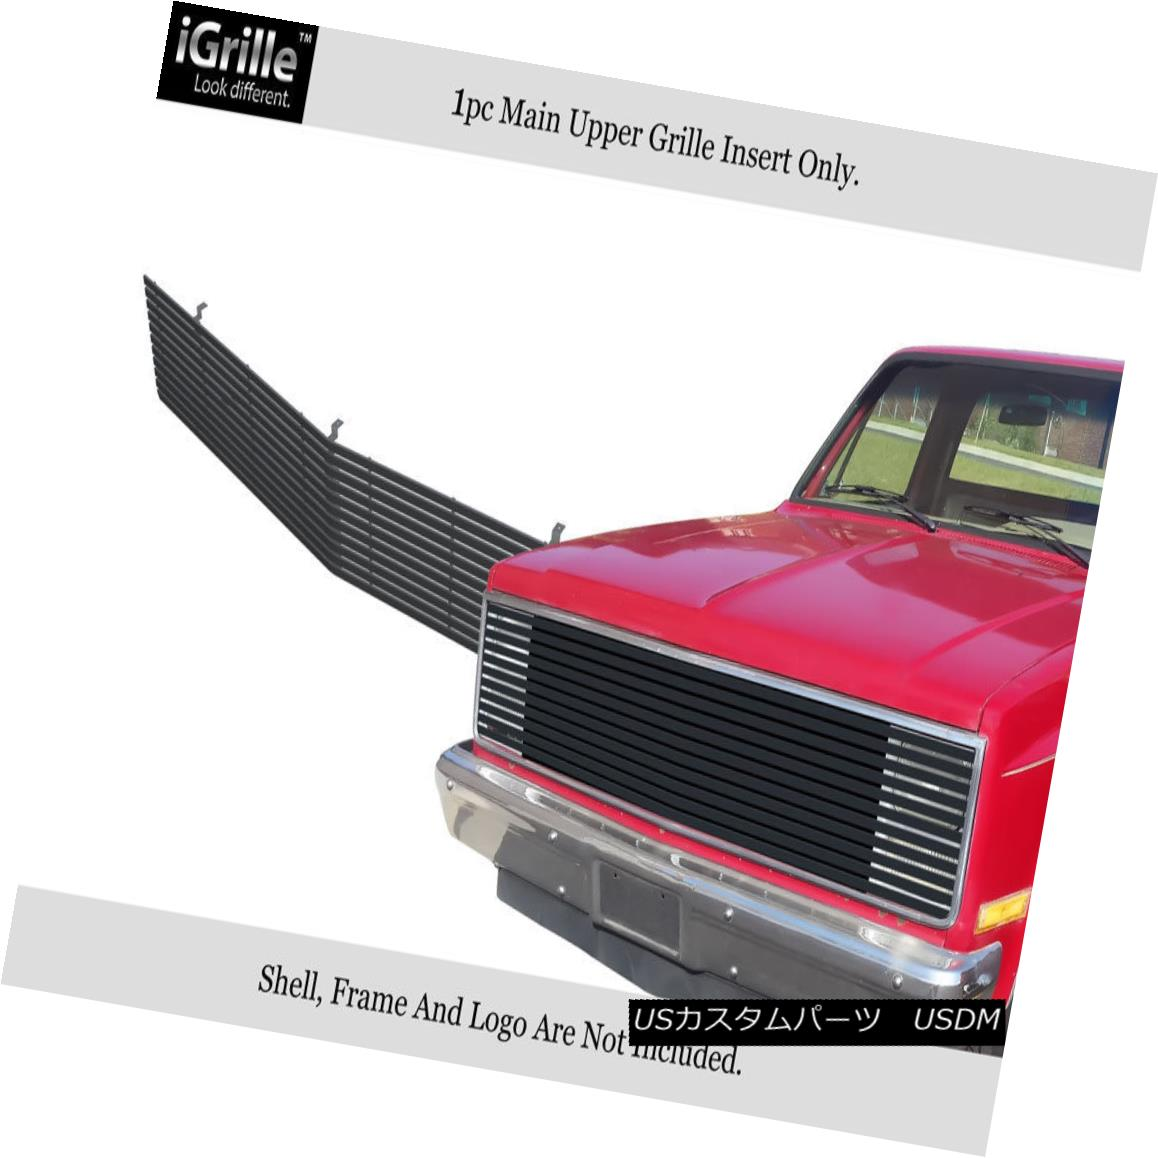 グリル 81-87 Chevy GMC Pickup/Suburban/Blazer/Jimmy Phantom Black Wide Billet Grille 81-87 Chevy GMC Pickup / Suburba n / Blazer / Jimmy Phantom Black Wide Billet Grille